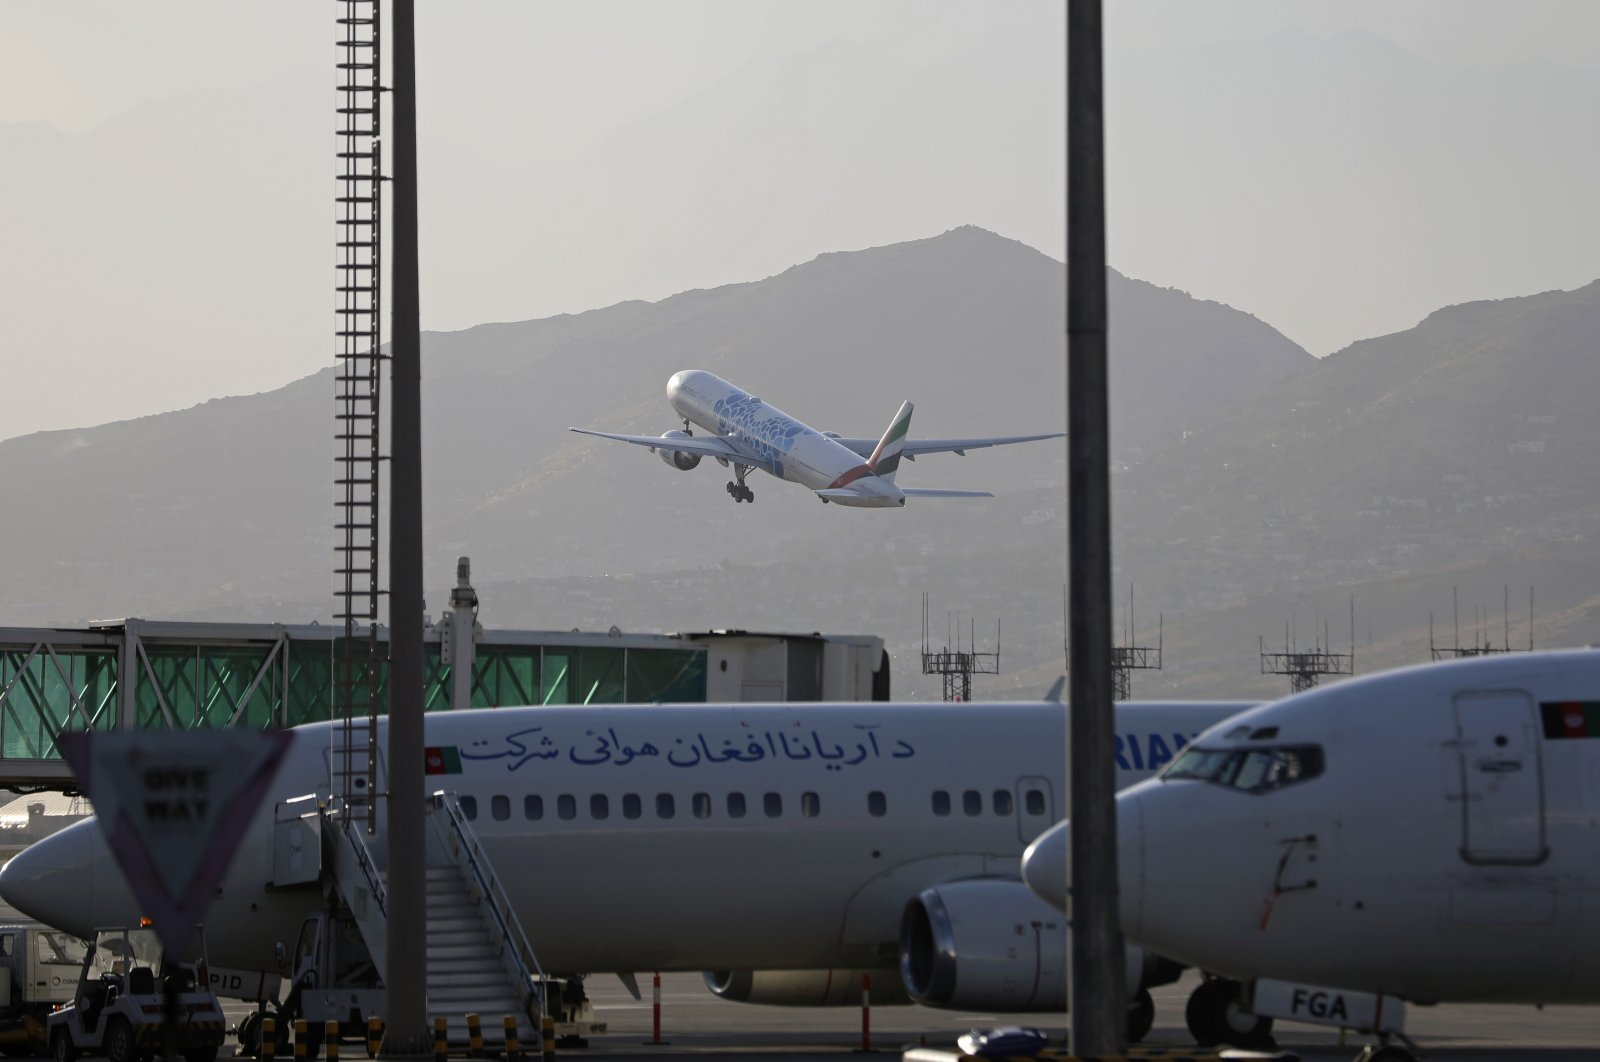 A plane takes off from Hamid Karzai International Airport in Kabul, Afghanistan, Sunday, July 4, 2021. (AP Photo)